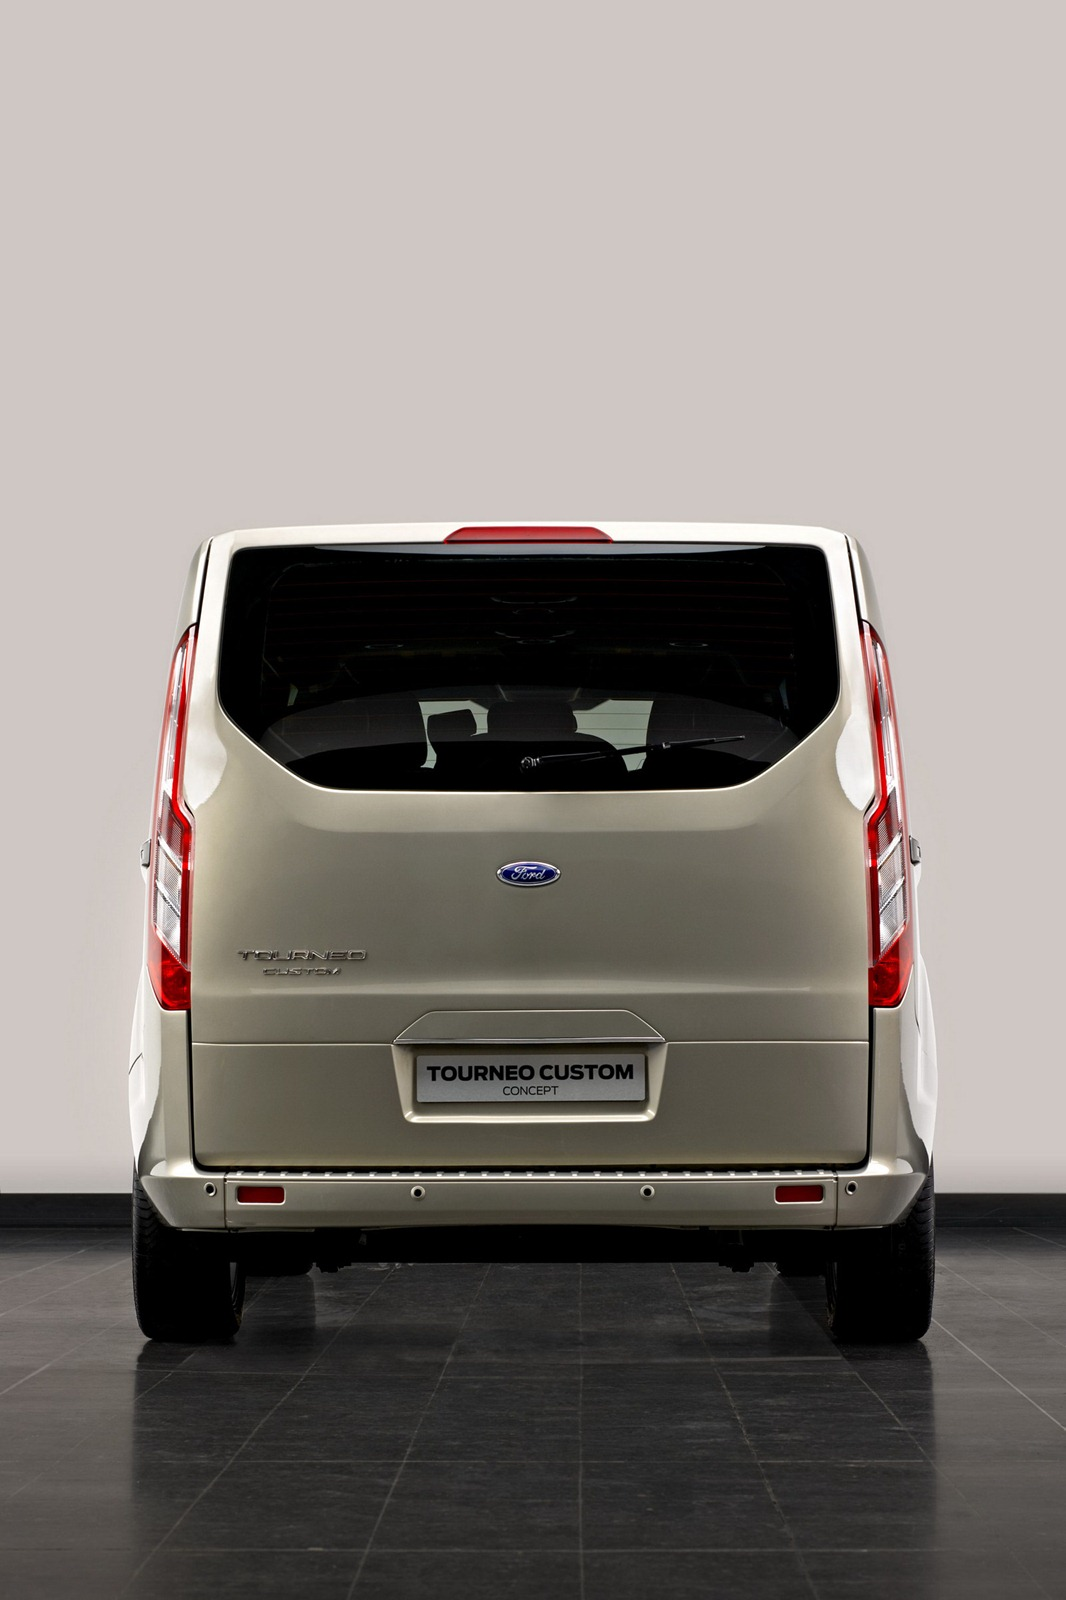 2012 Ford Transit with Tourneo Custom Concept